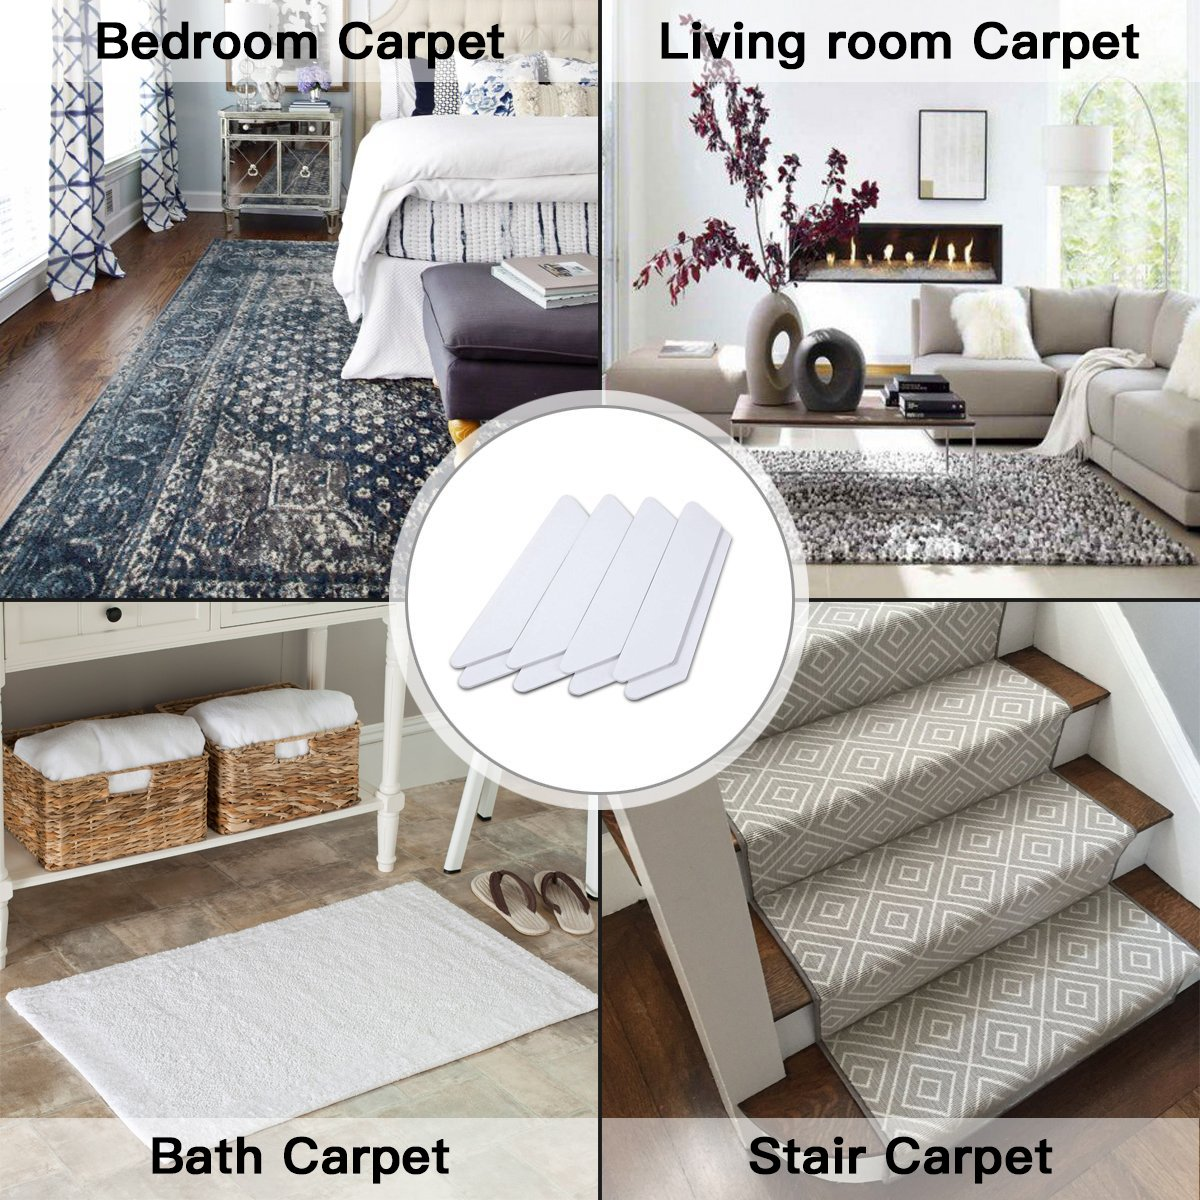 16 PCS Rug Gripper, Double Side Anti Curling & Non Slip Rug Gripper Keep Carpet Tape Stop Slipping for Outdoor / Bath / Kitchen / Round / Corner / Hardwood Floor Carpet Pads - White by drtulz (Image #7)